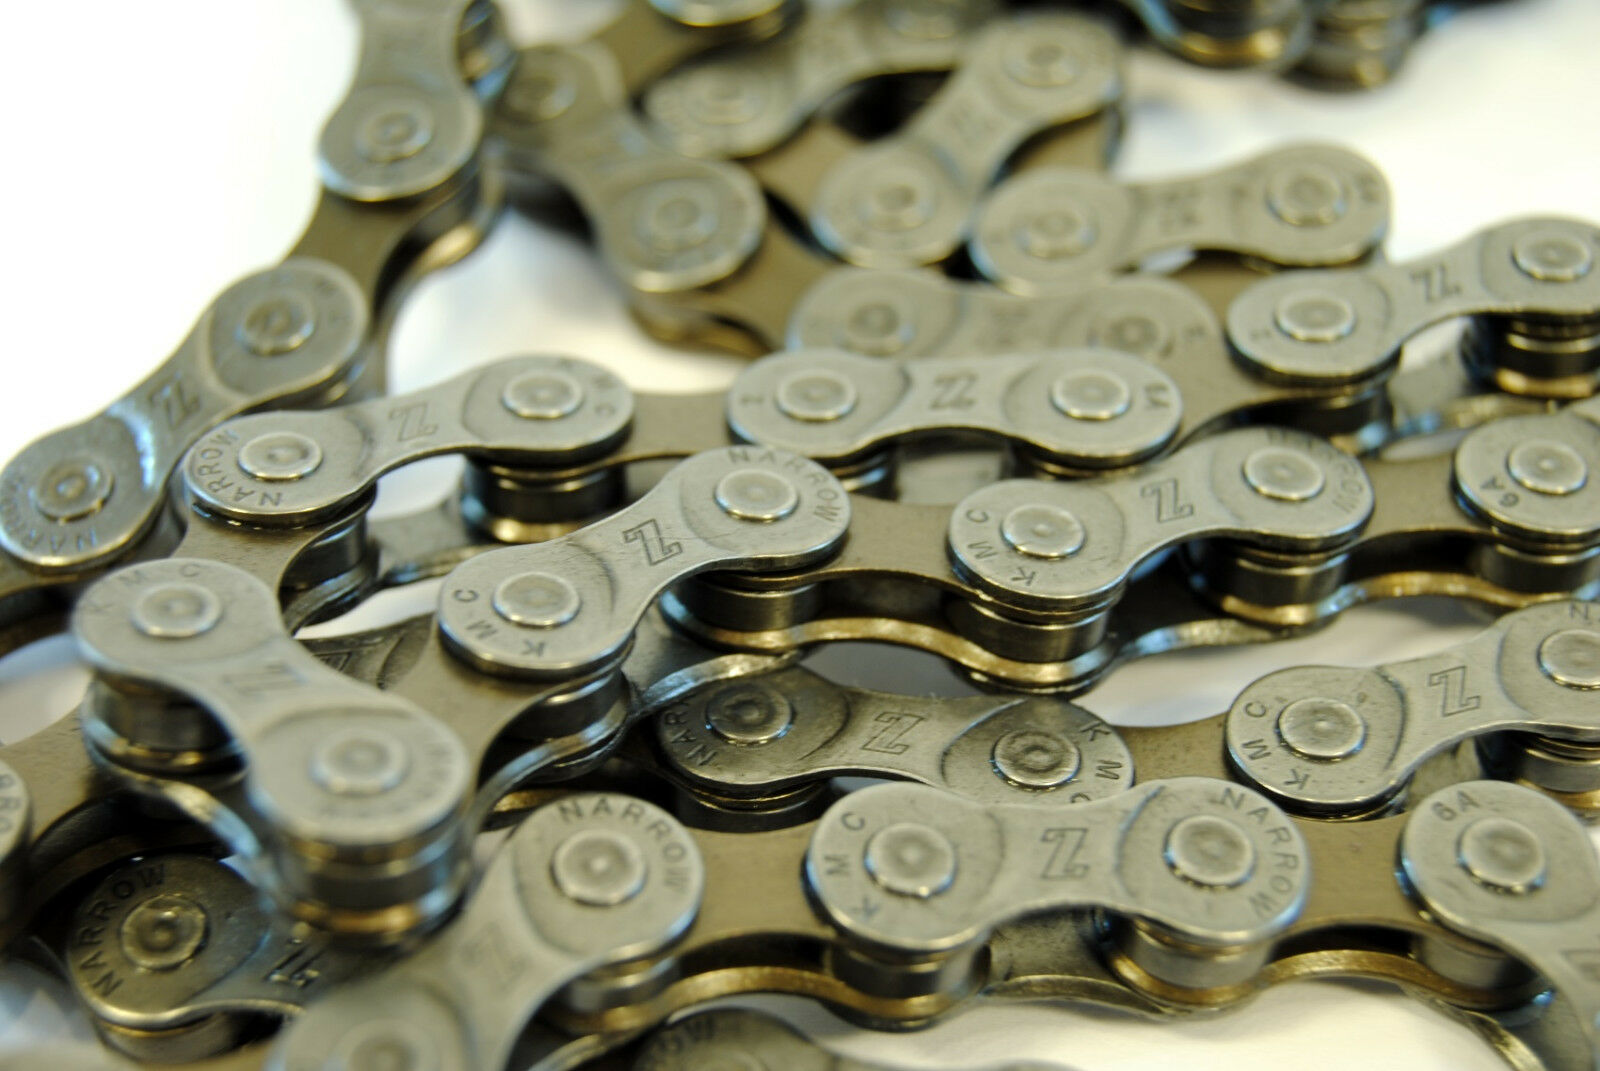 KMC Z72 Chain-6//7//8 Speed-7.1mm-116 Links-Gray//Brown-New